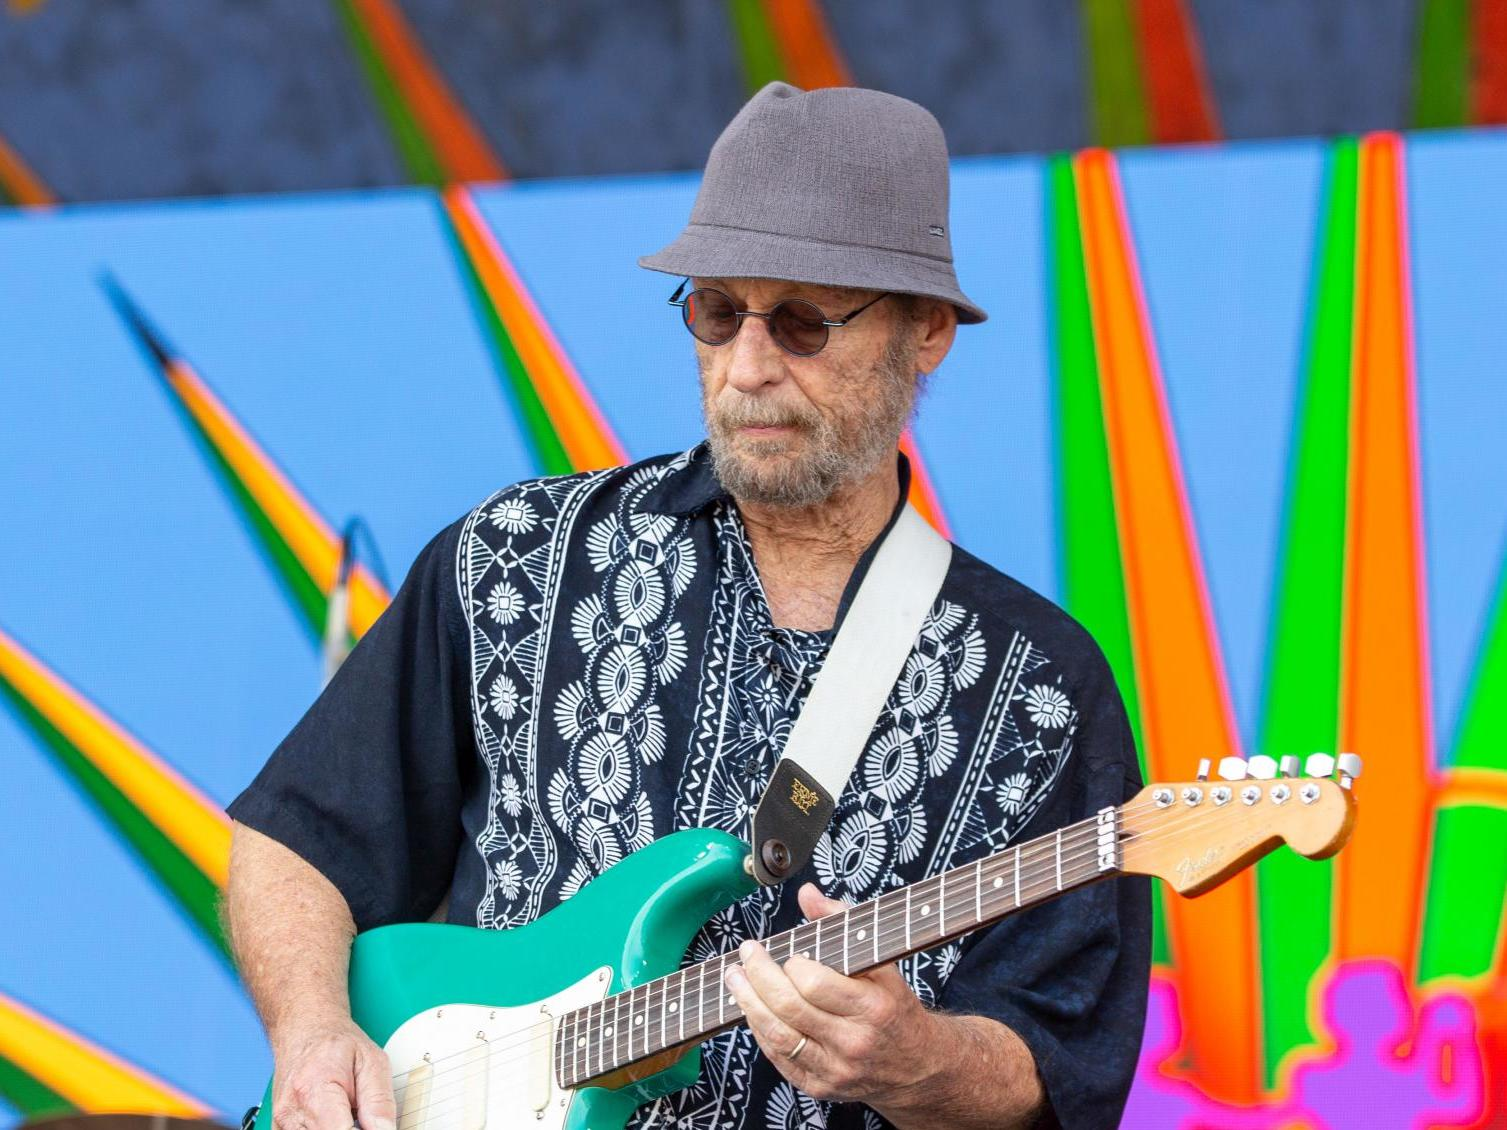 Paul Barrere death: Little Feat singer and guitarist dies, aged 71